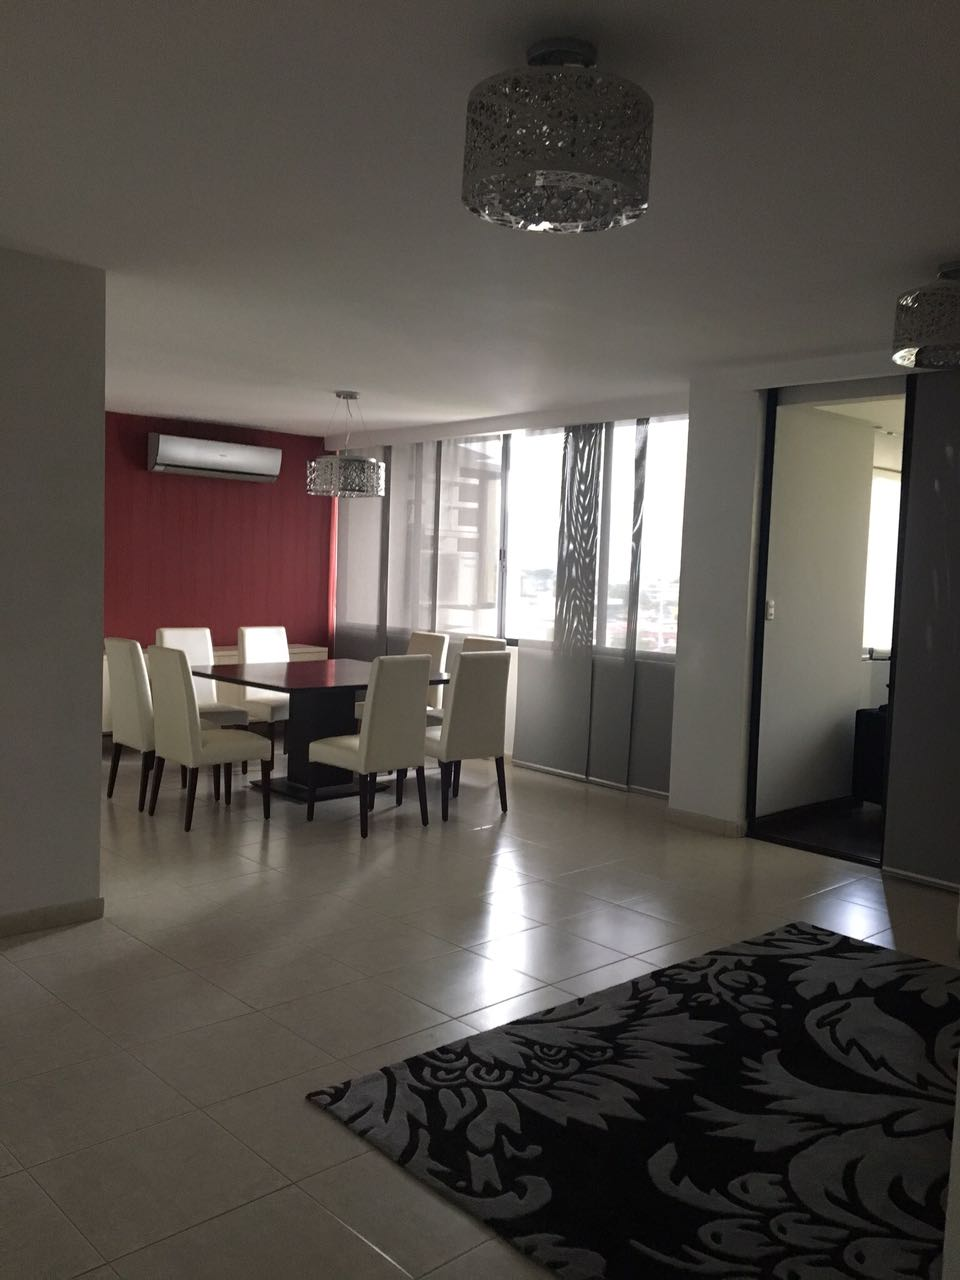 Sale 3 bedroom apartment in ph plaza real san francisco philip james realtyphilip james realty for 3 bedroom apartments in san francisco